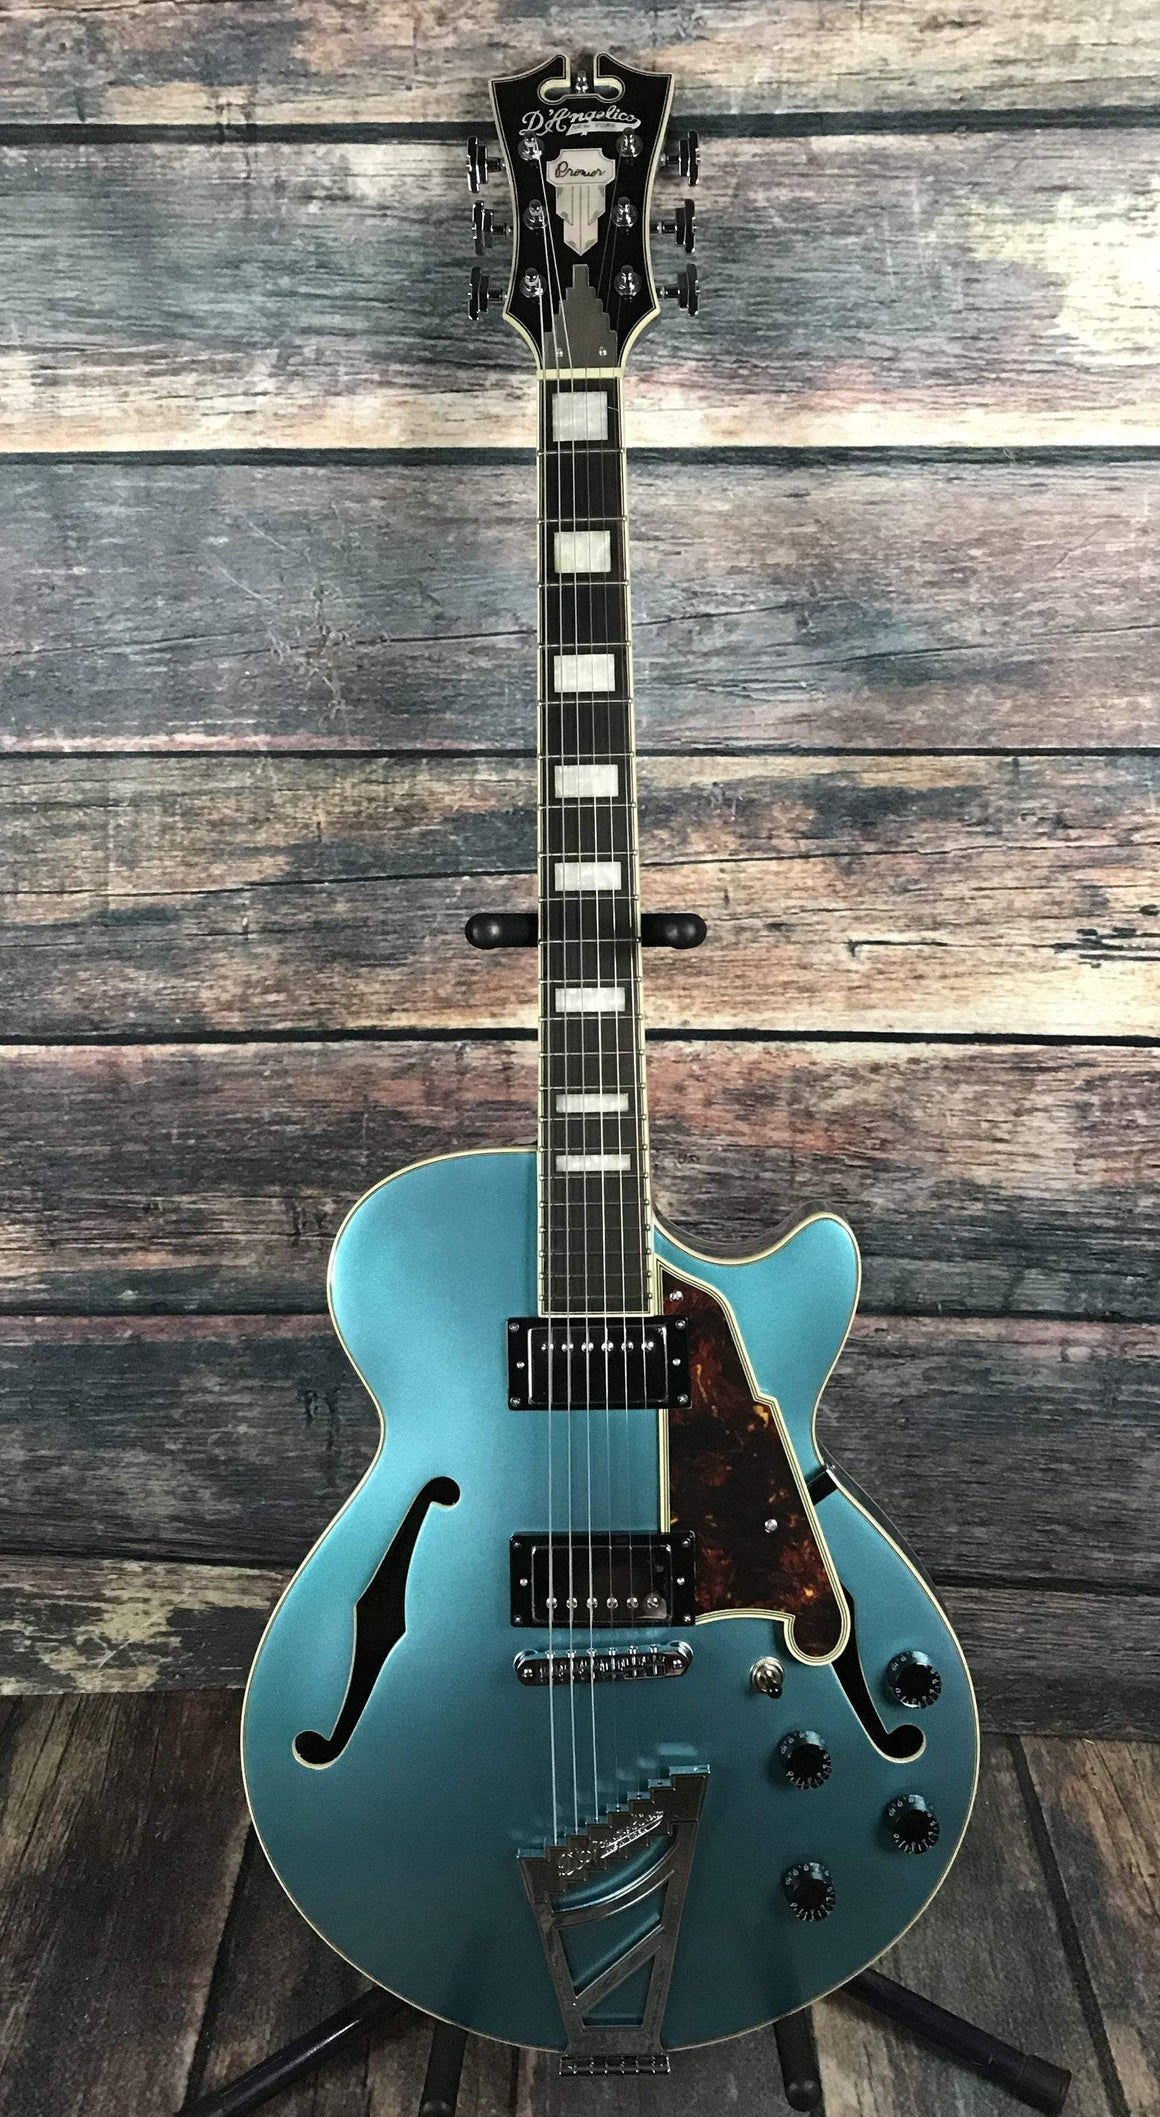 D'Angelico Electric Guitar D'Angelico Premier SS Semi Hollow Electric Guitar- Ocean Turquoise